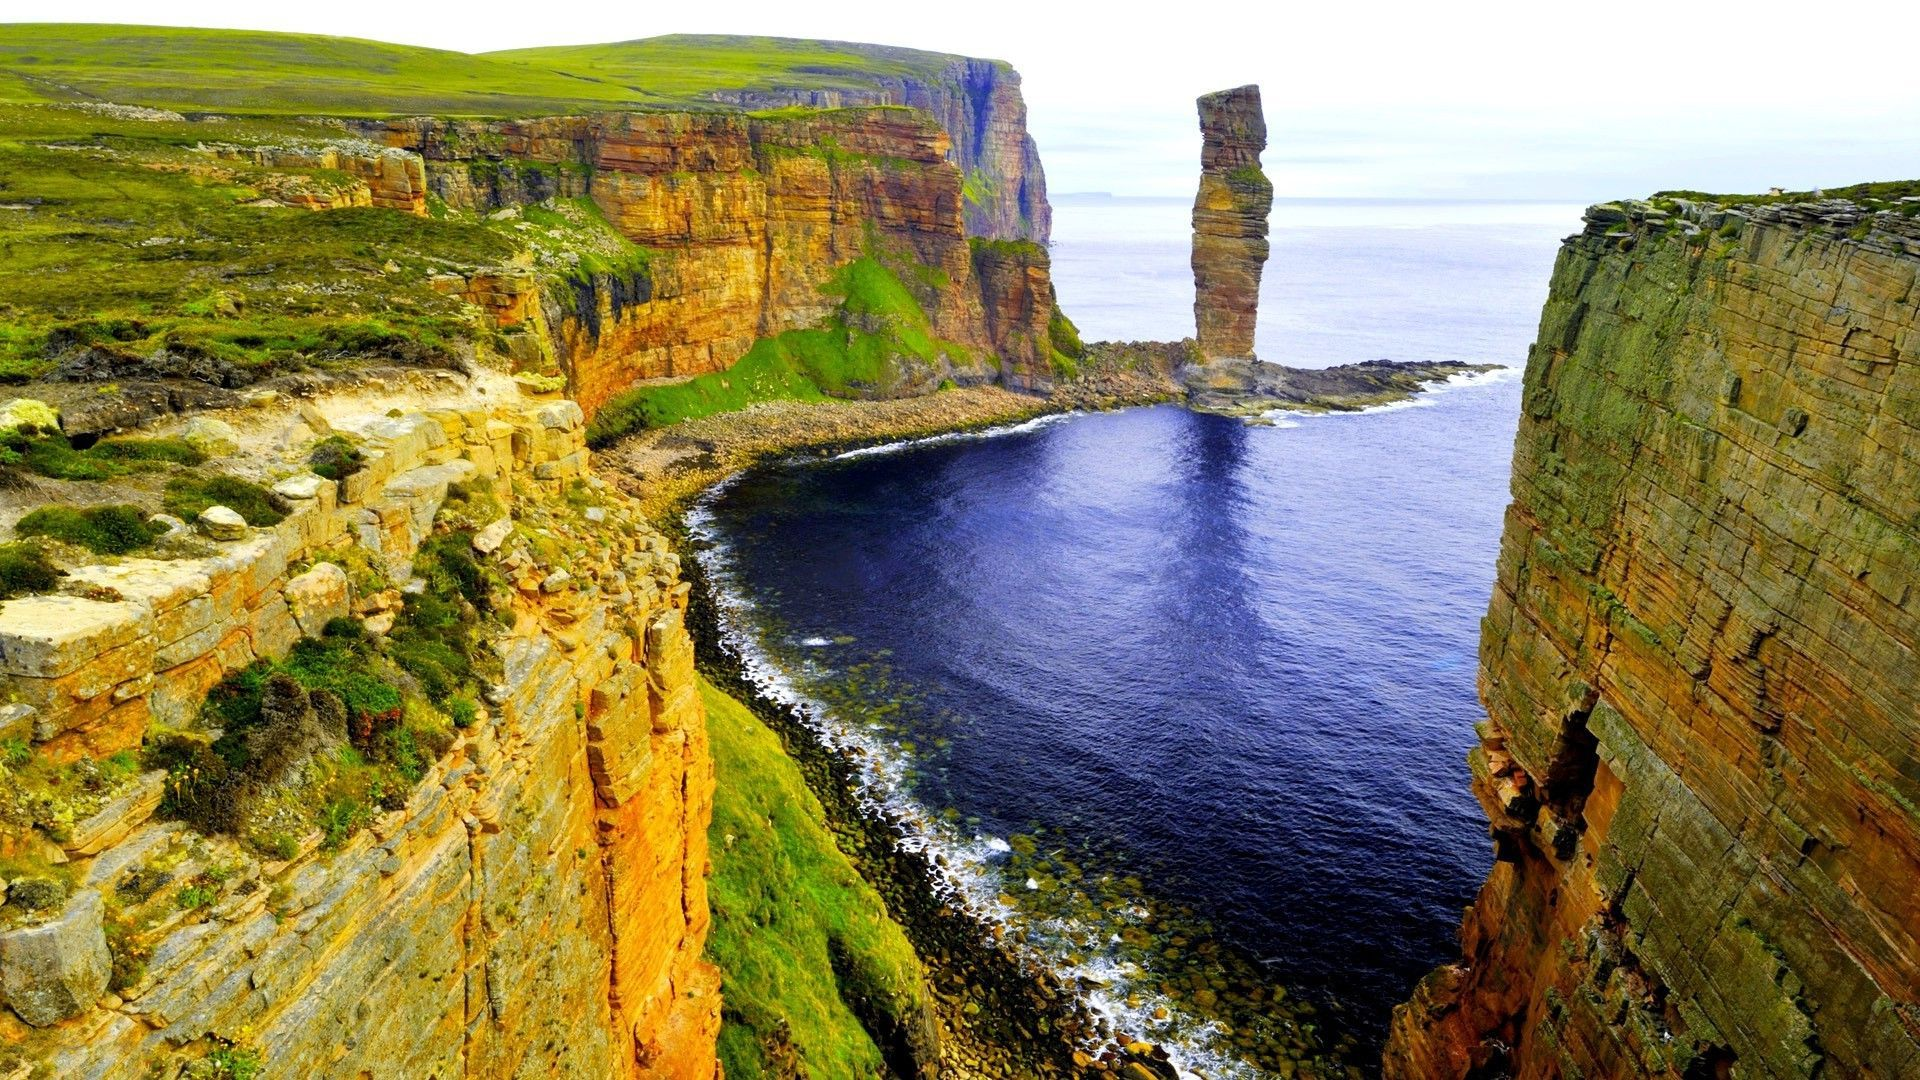 Old Man of Hoy, Scotland wallpaper